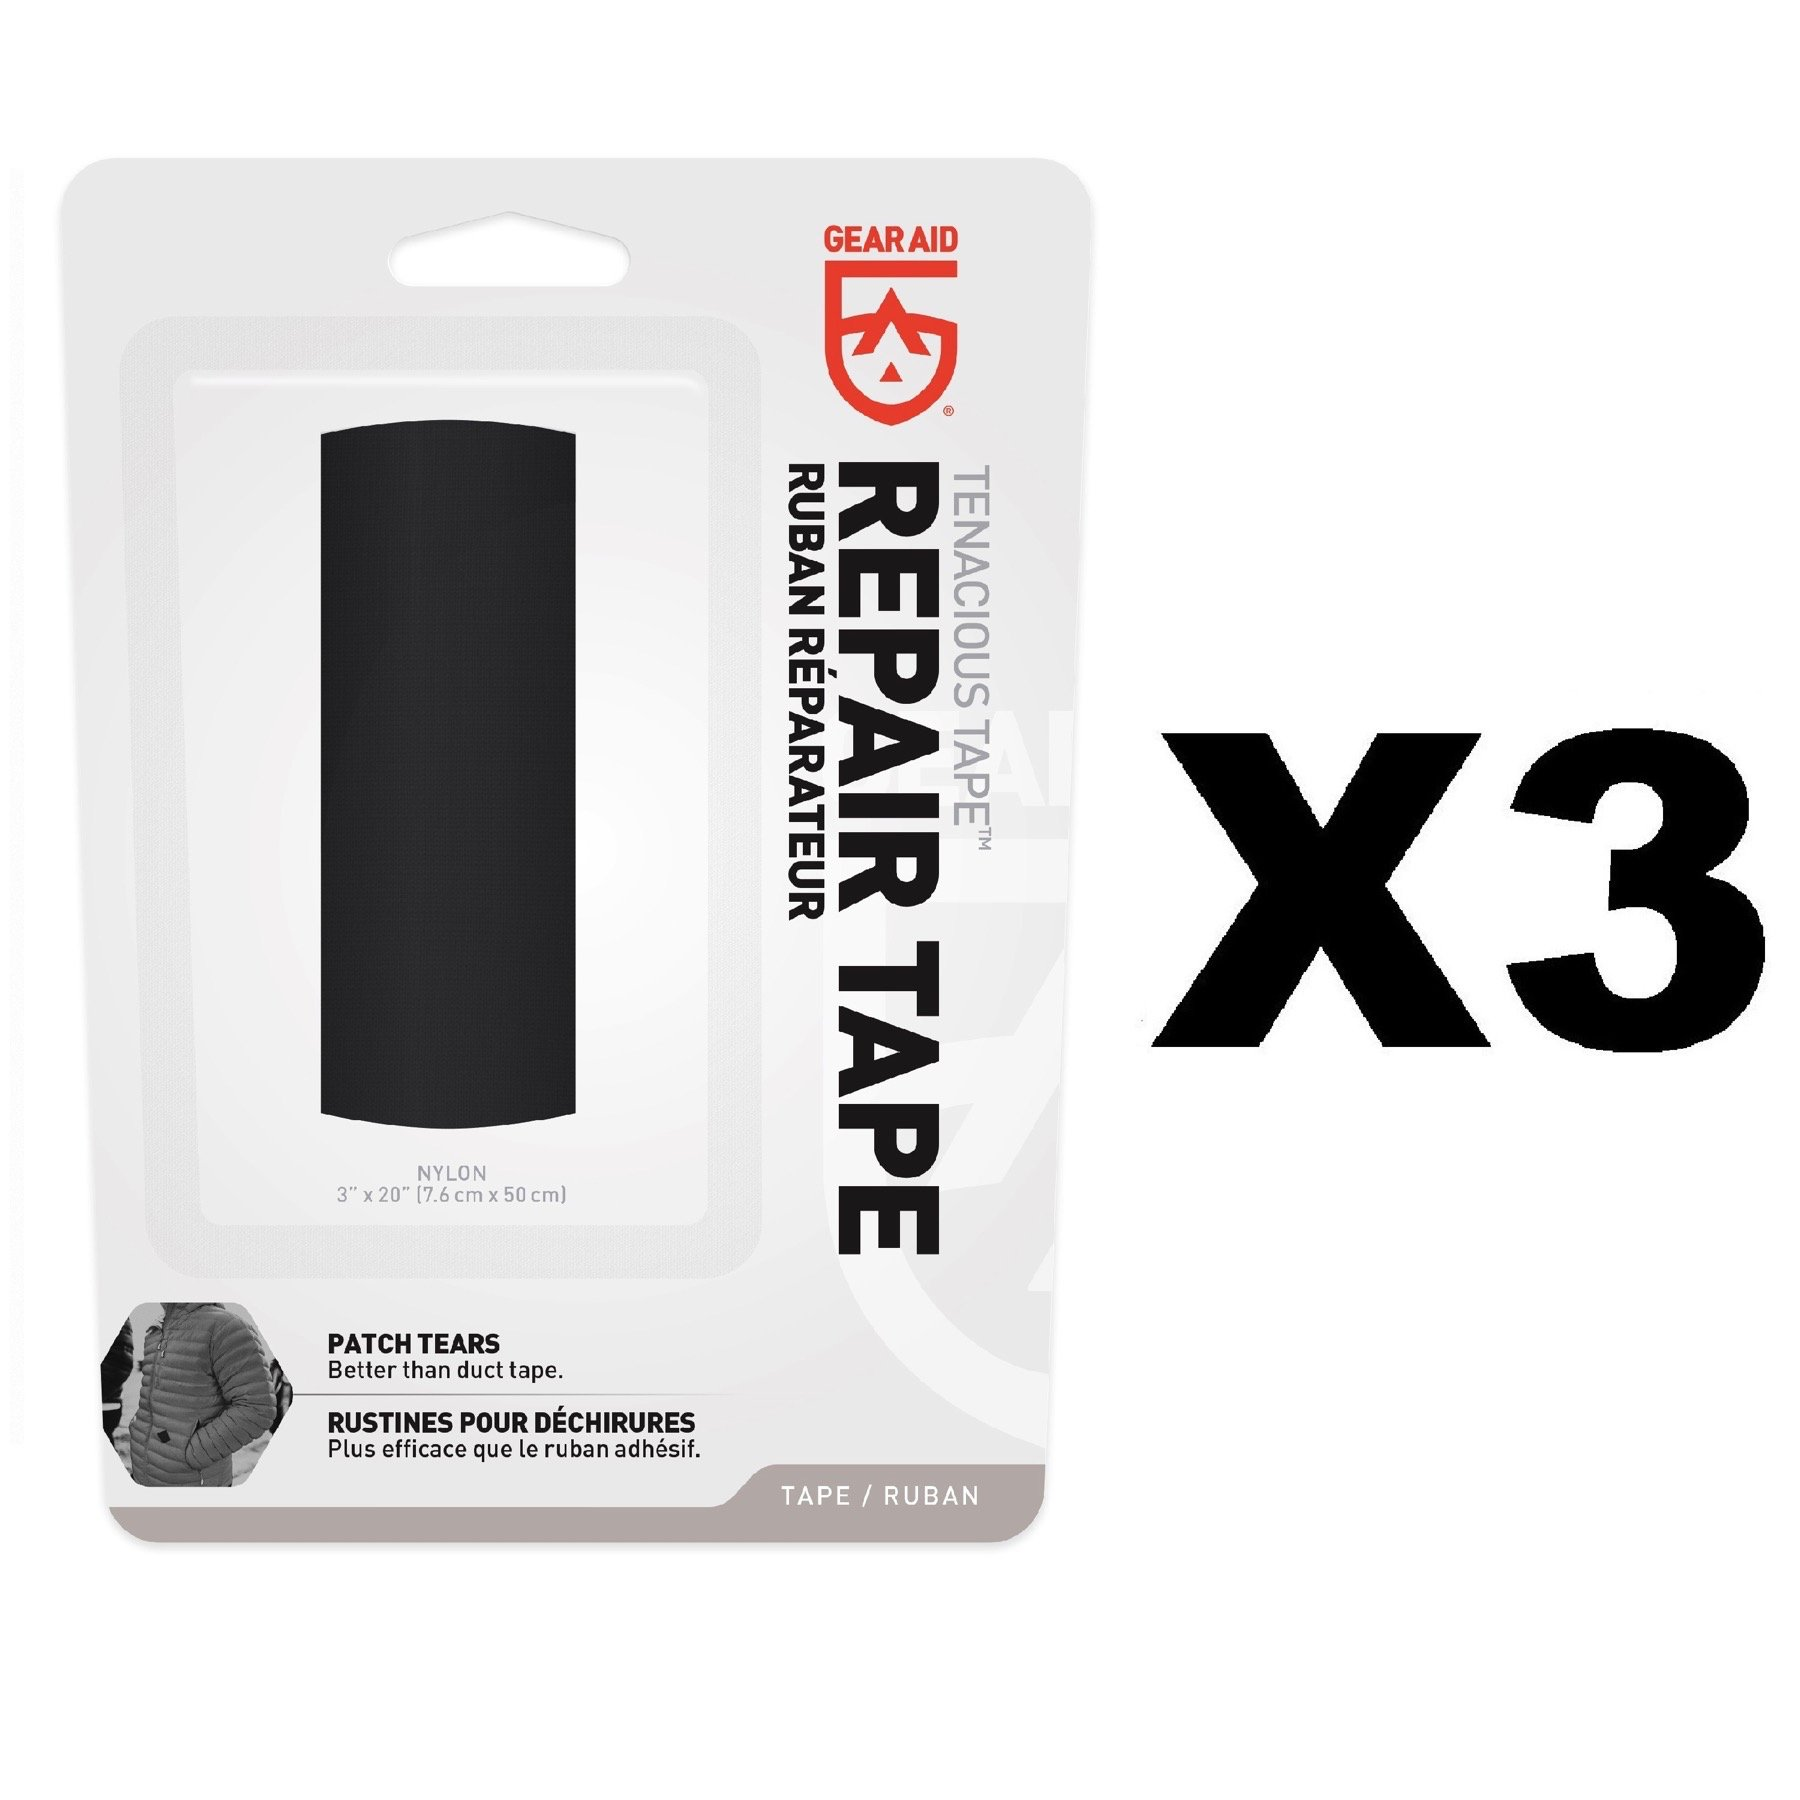 Gear Aid McNett Tenacious Tape Black Ultra Strong Outdoor Repair Tape (3-Pack) by Gear Aid (Image #1)